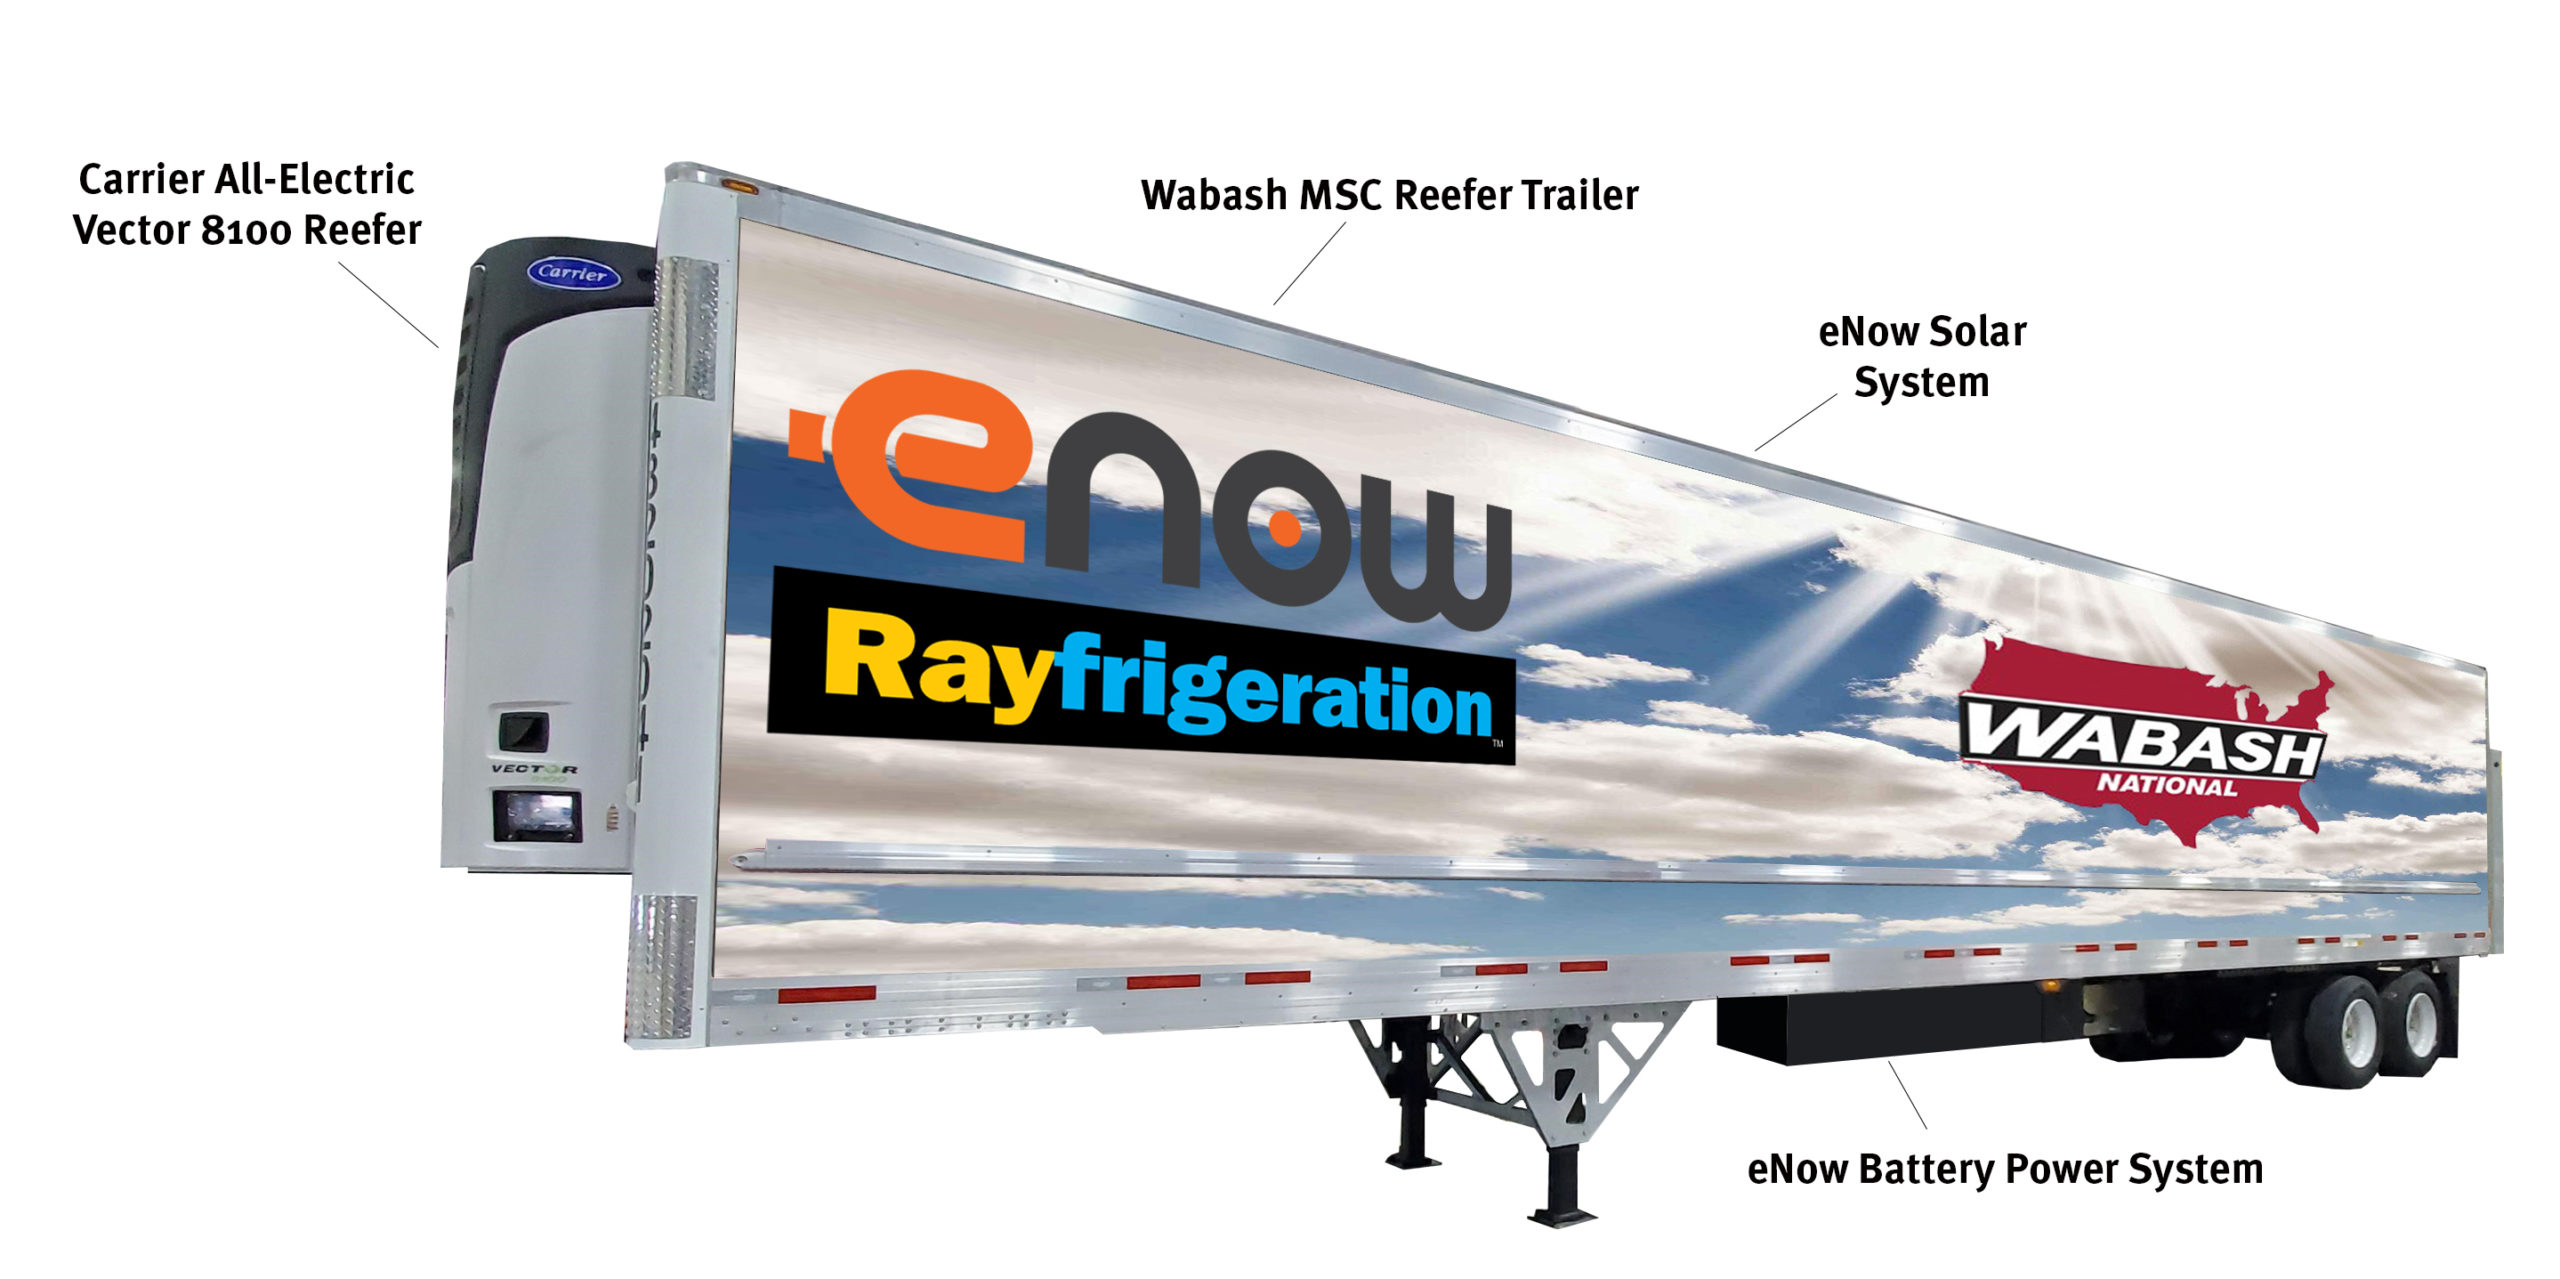 eNow Rayfrigeration Wabash MSC trailer